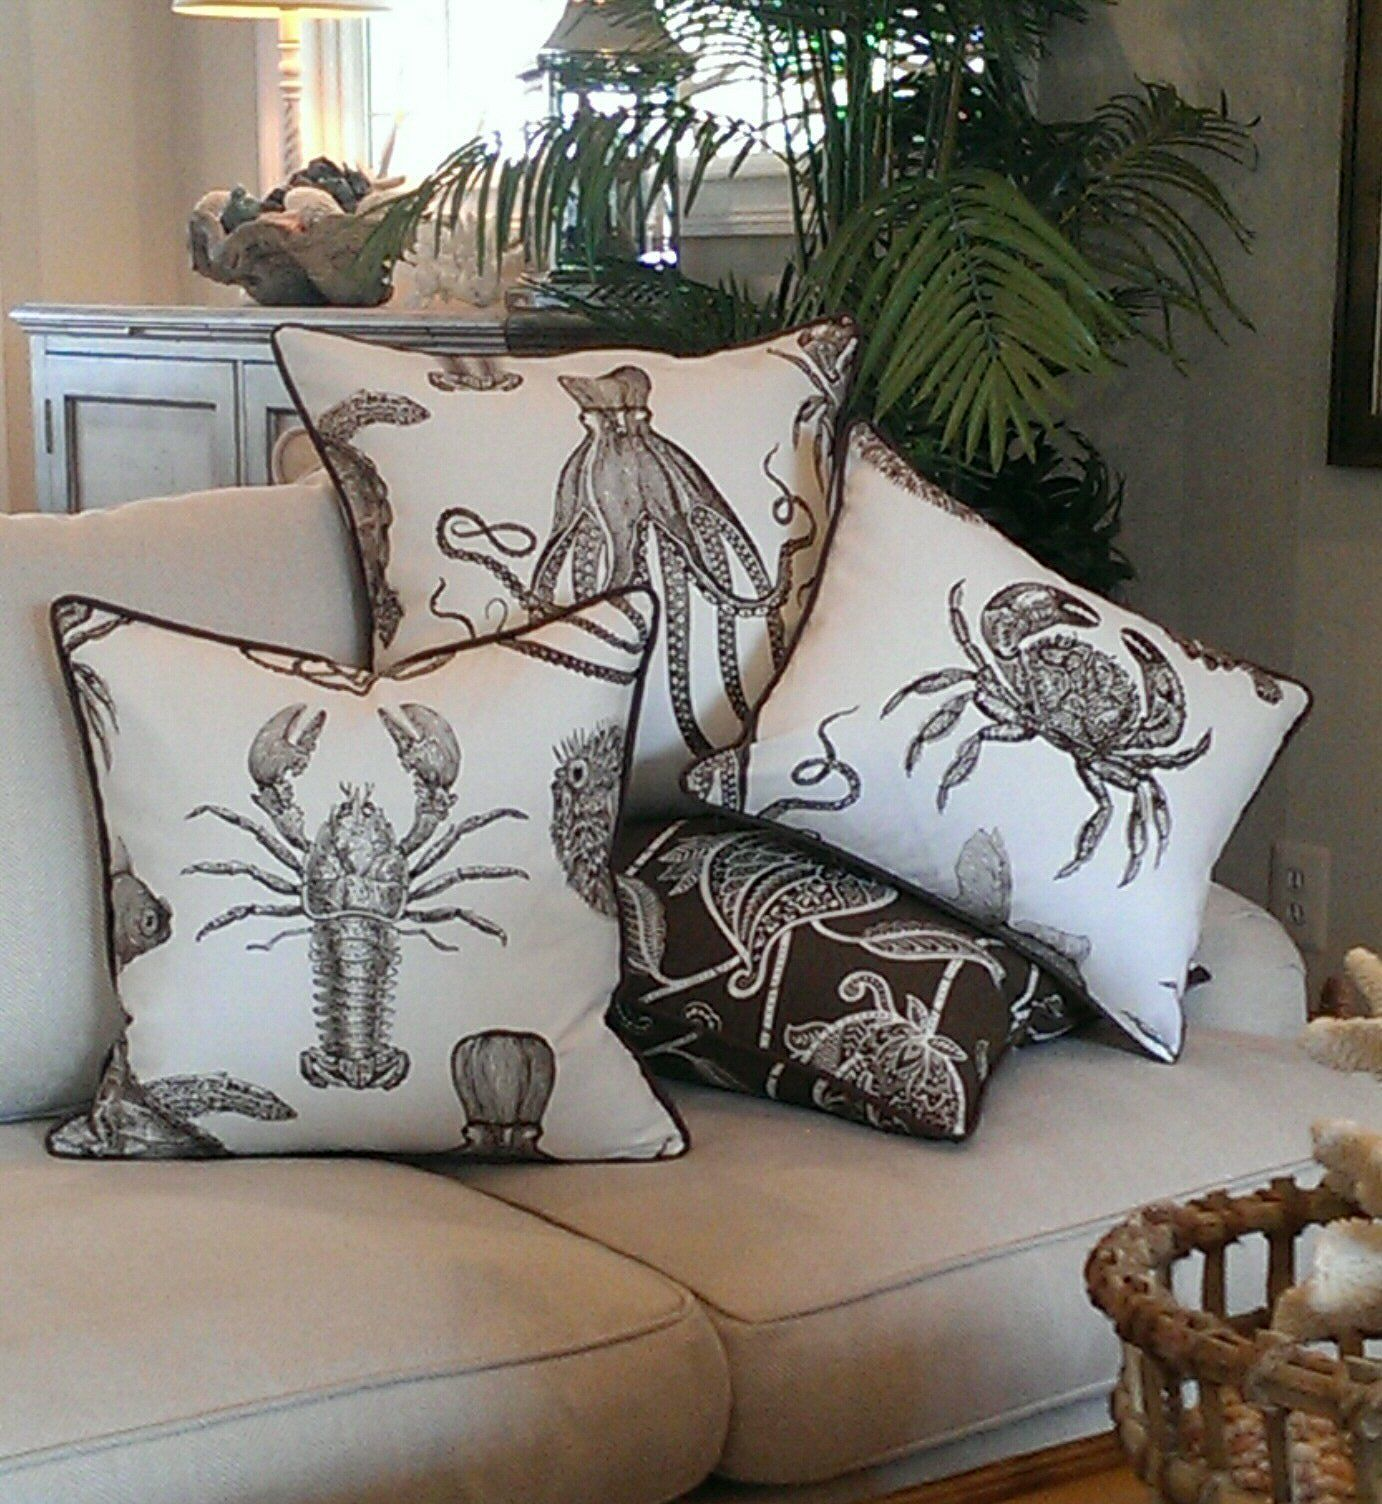 covers beach teal cushion cushions fullxfull zoom il designer contemporary listing pillows aqua pillow